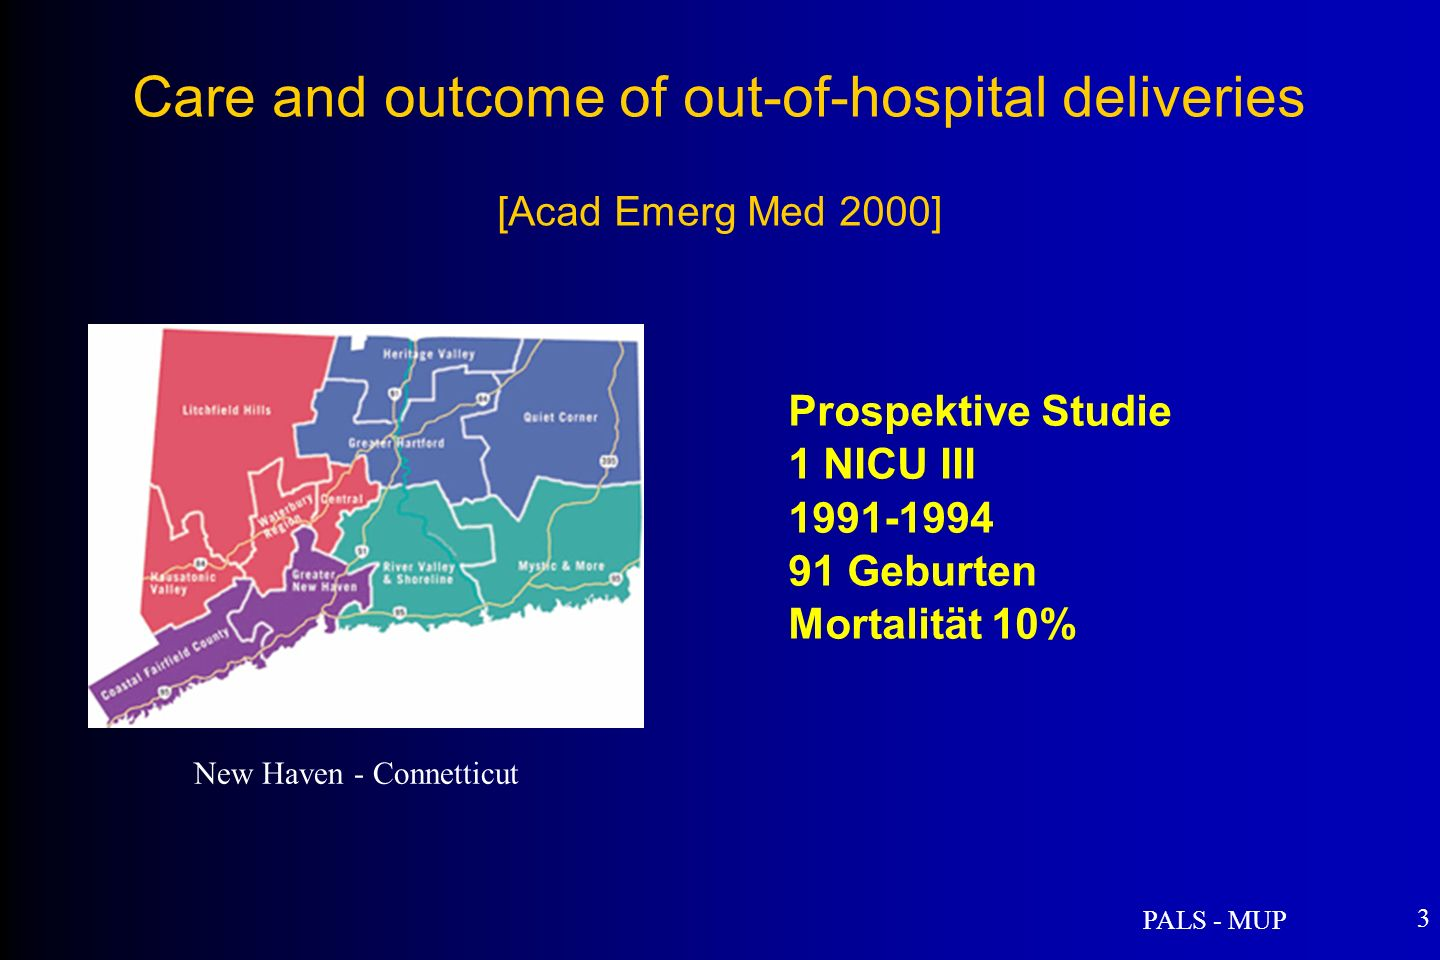 Care and outcome of out-of-hospital deliveries